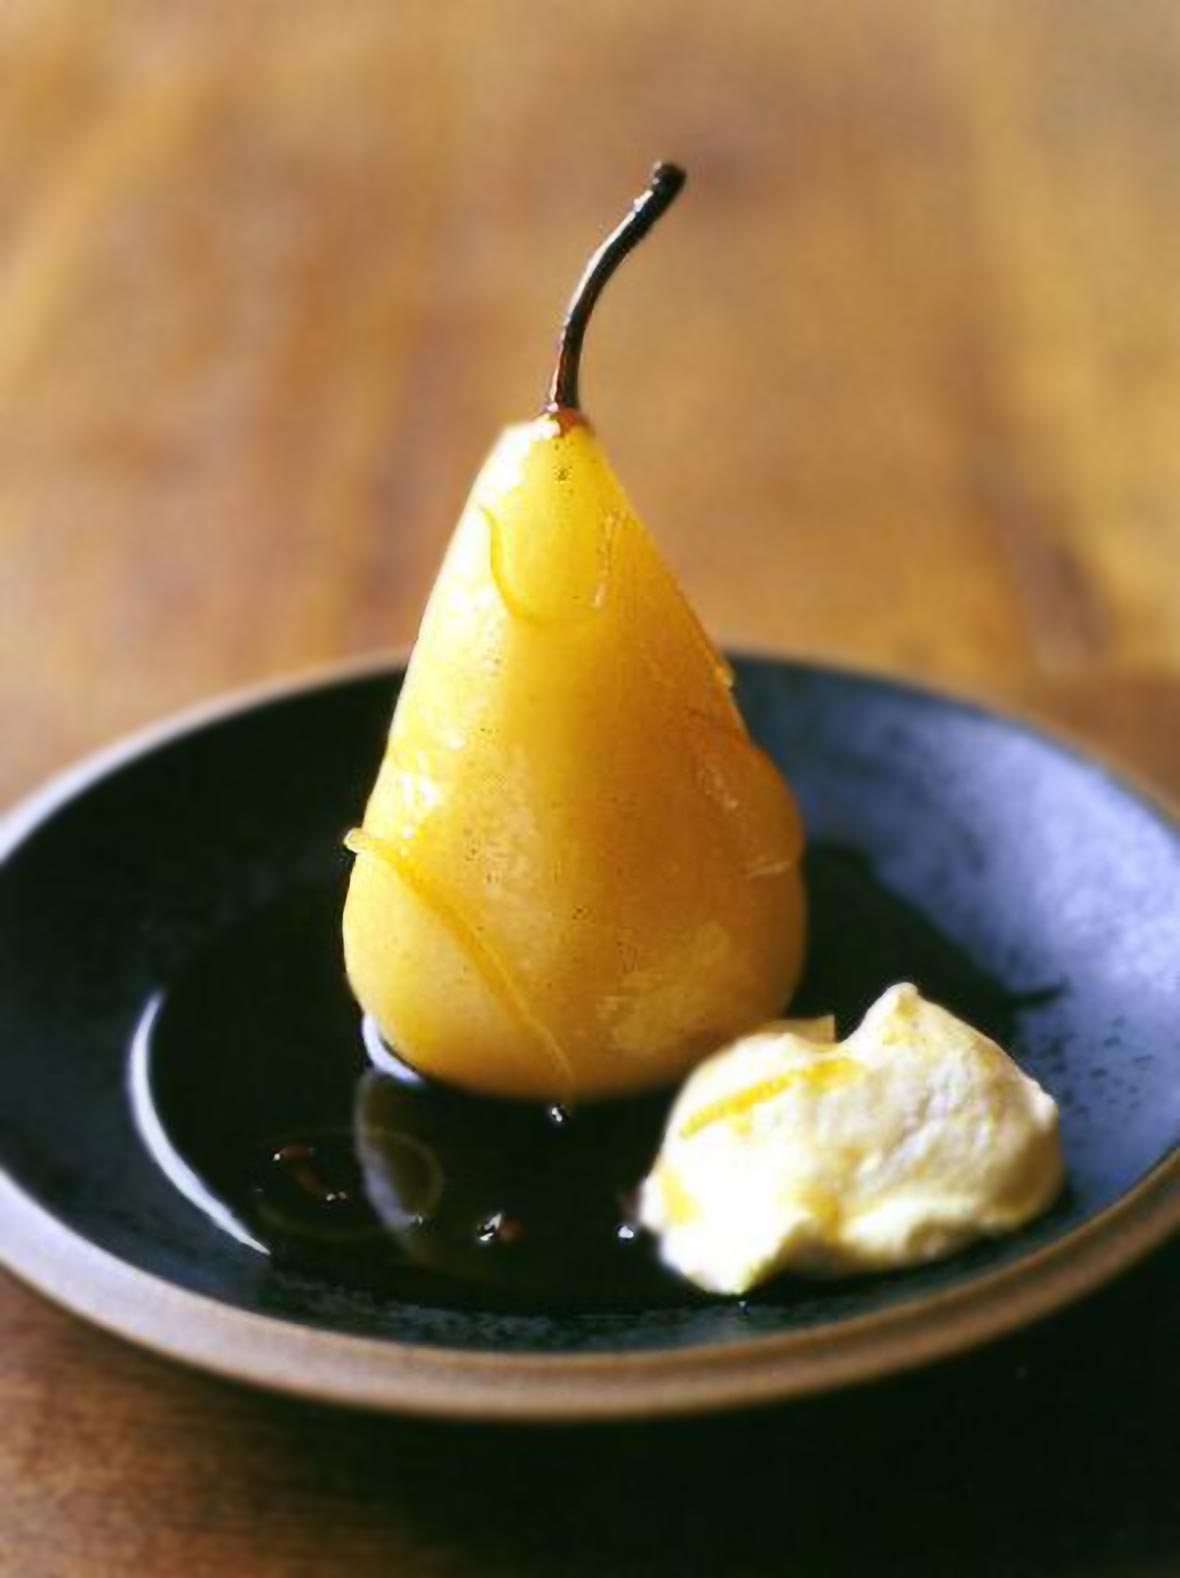 A lemon poached pear with a dollop of lemon cream on a black plate